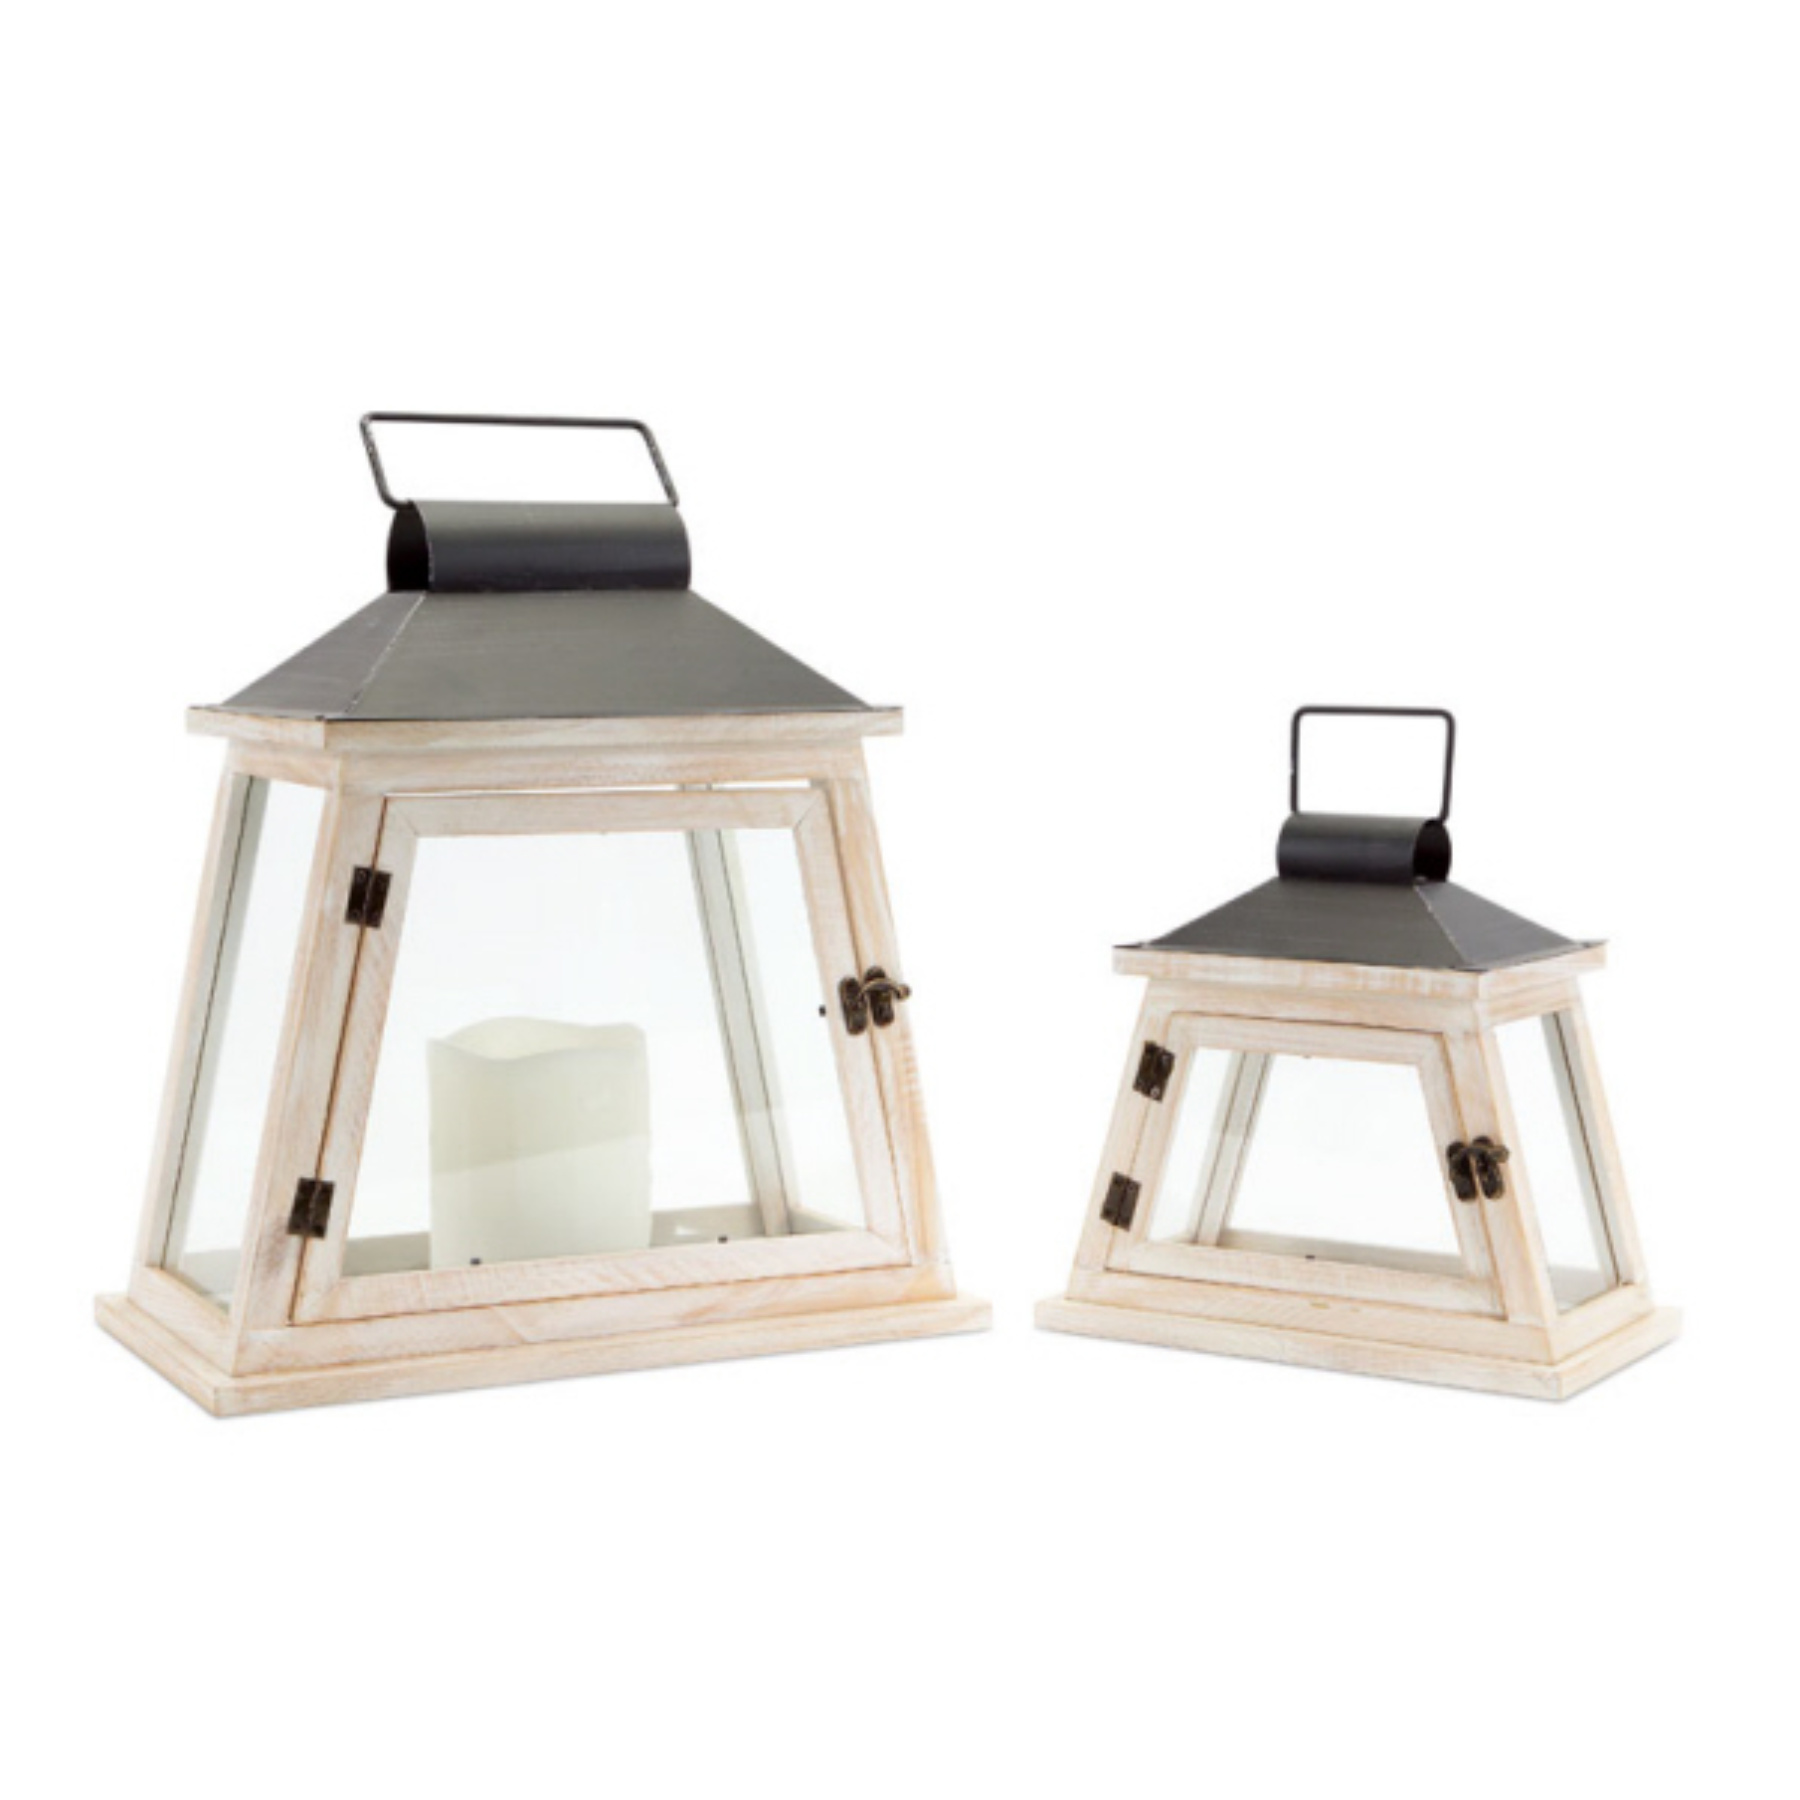 Magnificent candle lanterns for outdoor lighting ideas with outdoor candle lanterns and hanging candle lanterns